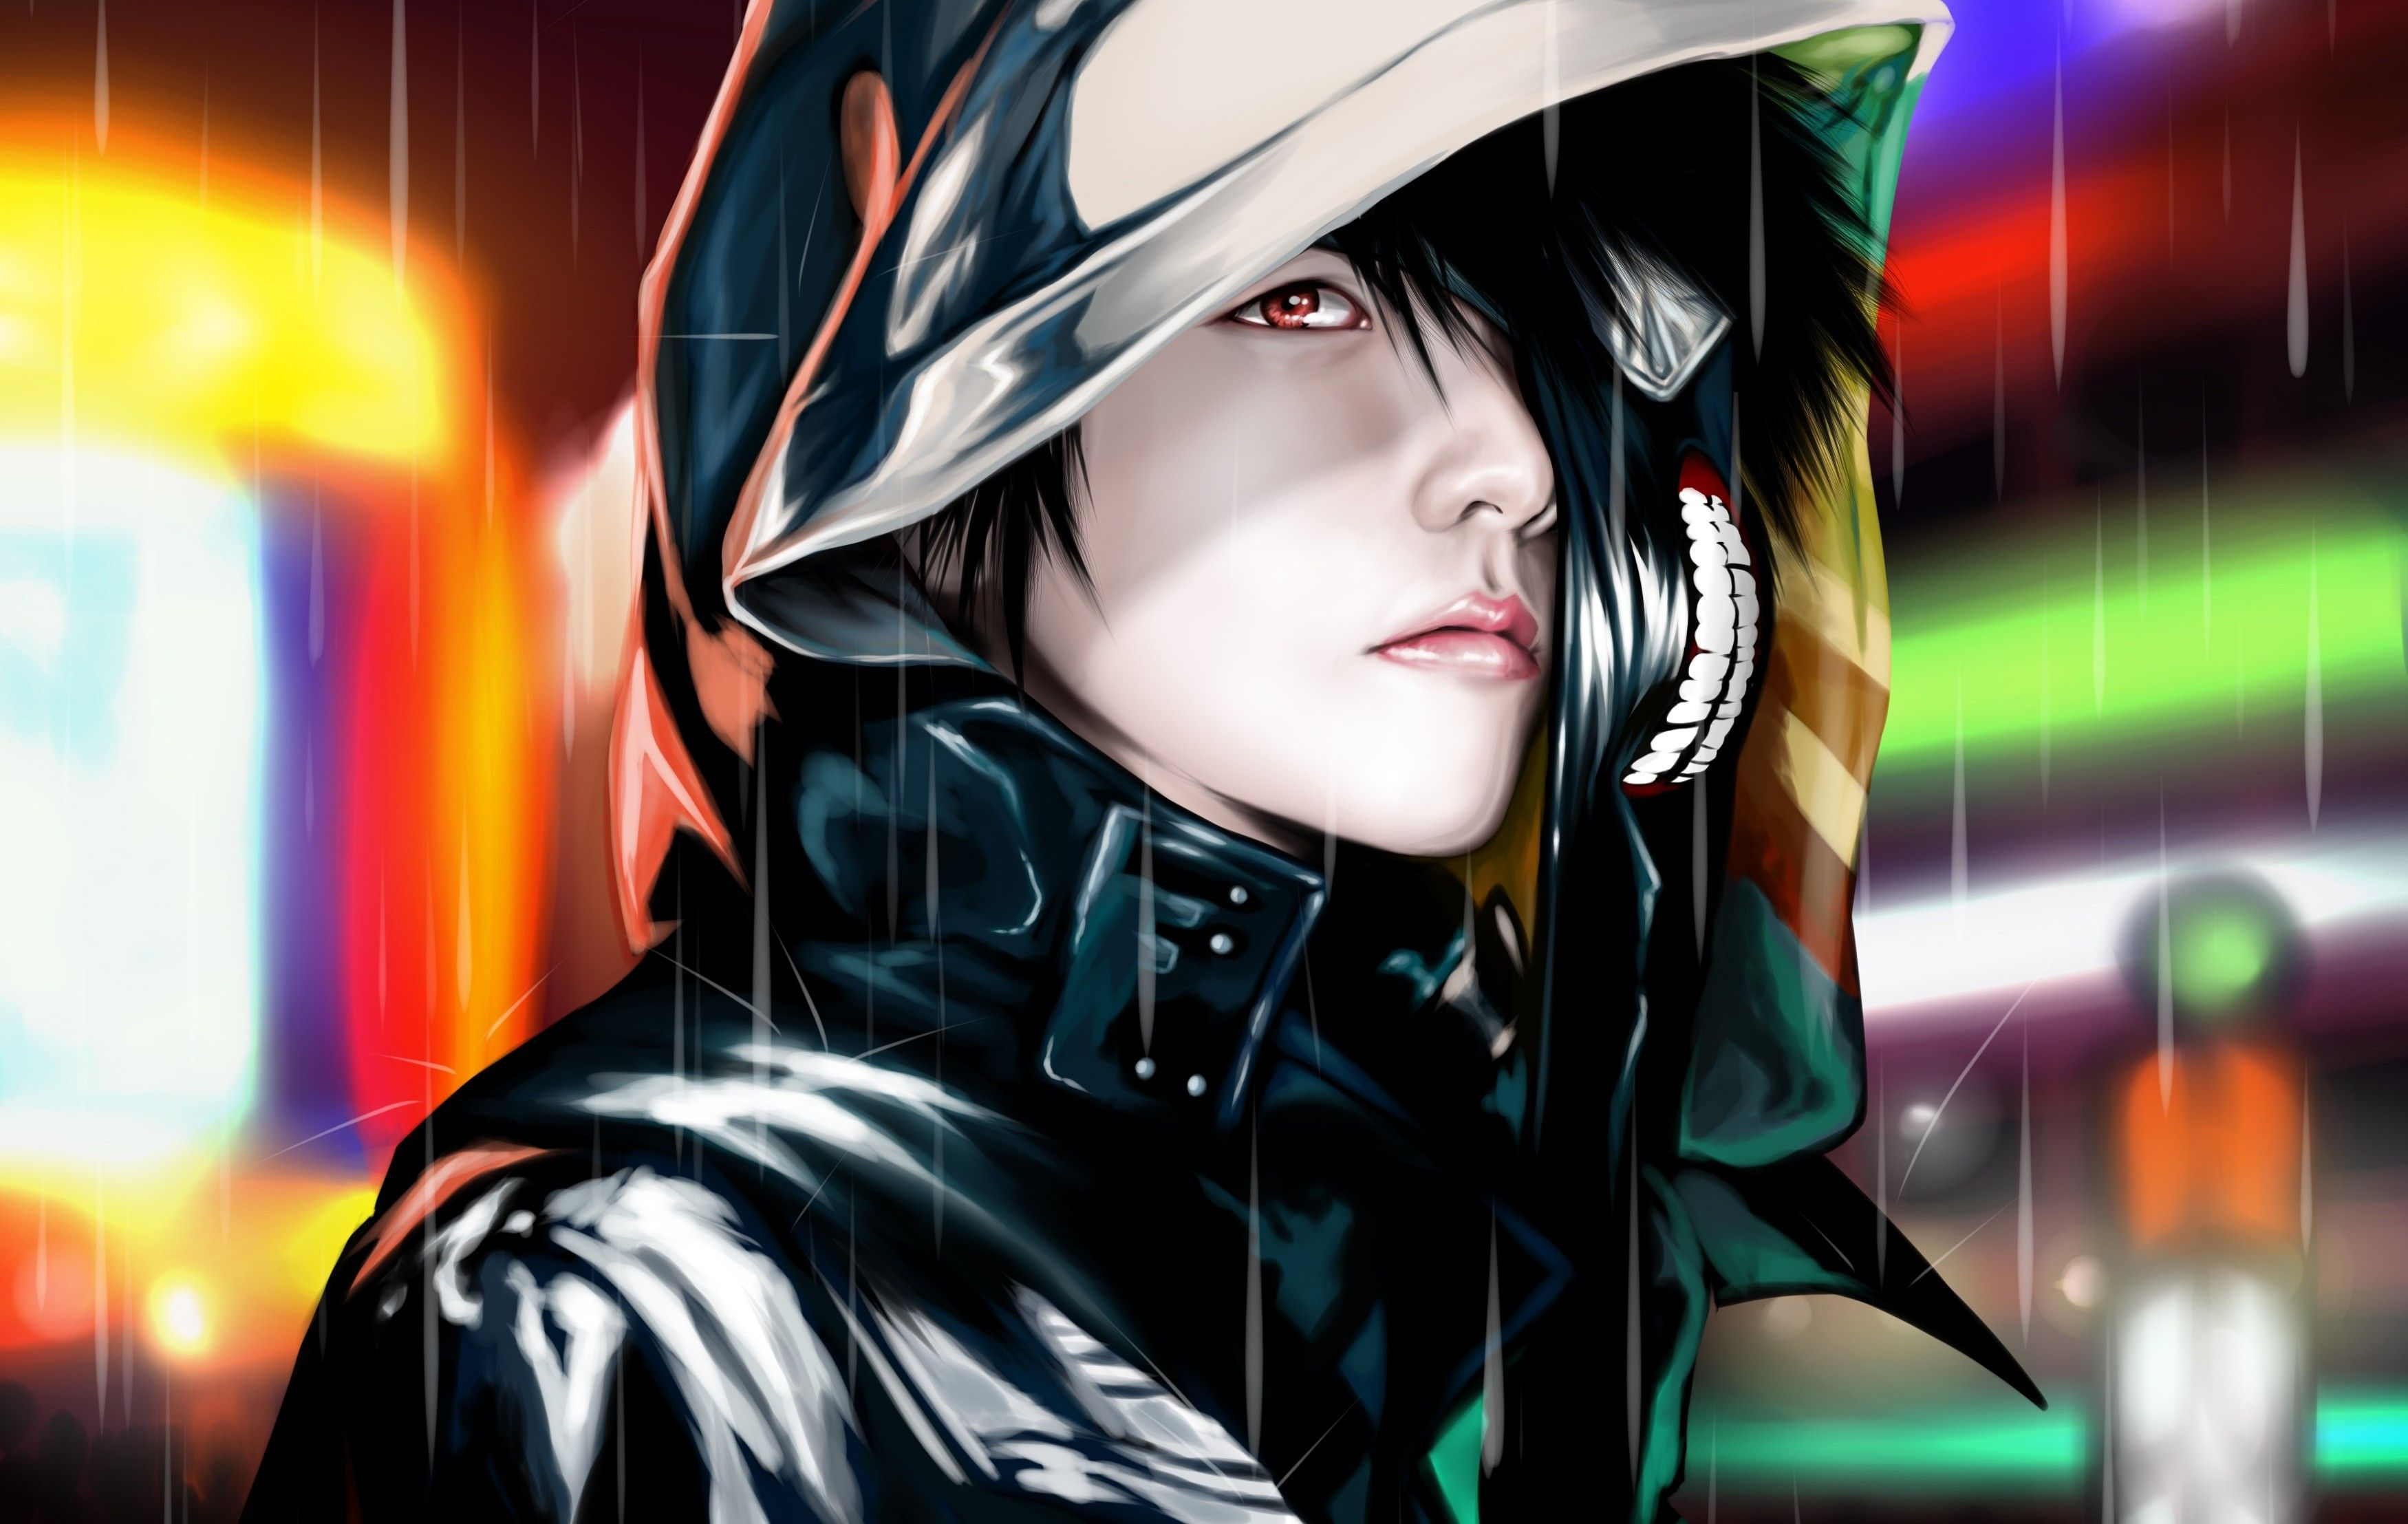 Extremely Cool Anime Boys Wallpapers Top Free Extremely Cool Anime Gambar Kartun Gambar Anime Kartun